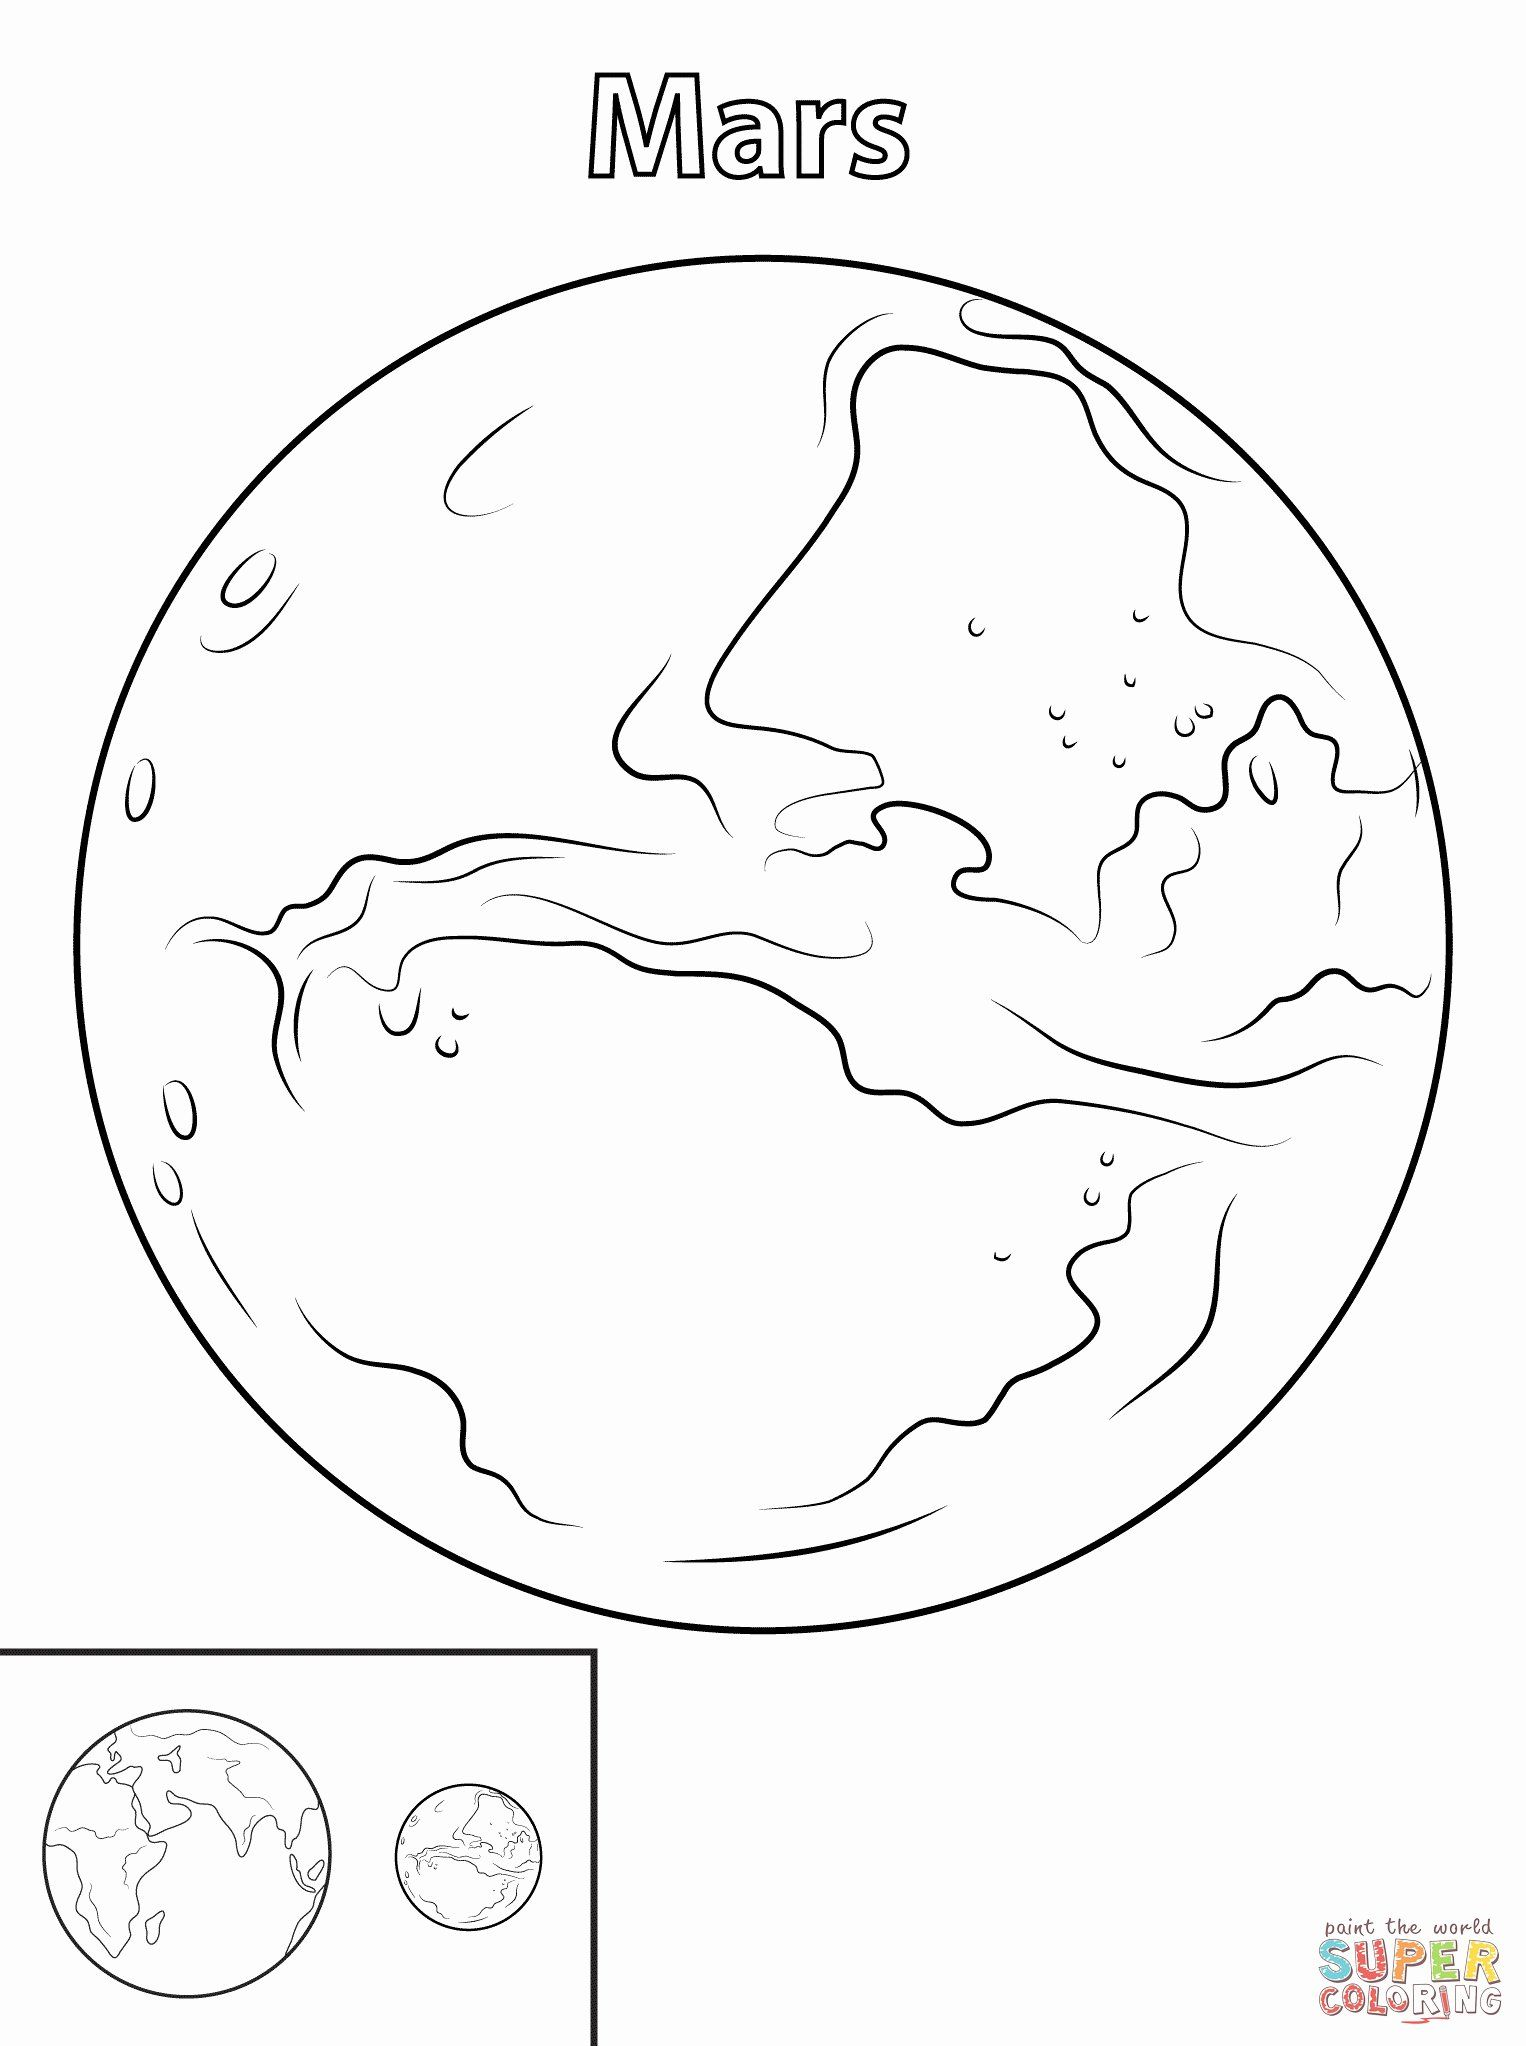 Space Rocket Coloring Sheet In 2020 Planet Coloring Pages Mars